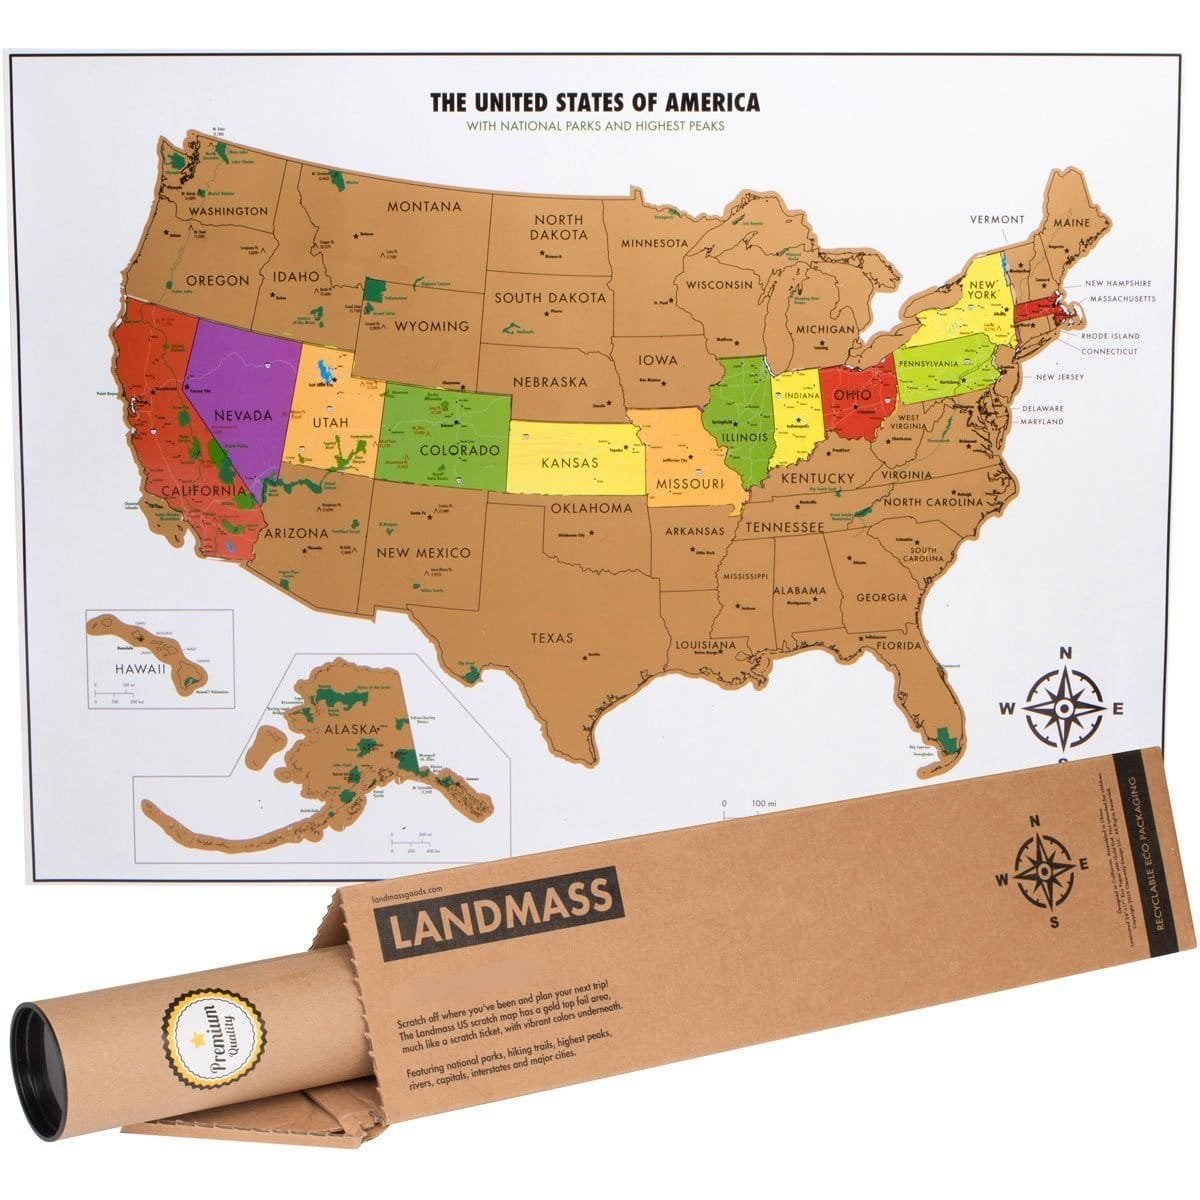 US Parks Scratch Off Map on holographic map, silver map, scratchable map, luckies scratch map, white map, world map, hubbard lake map, gourmet scratch map, black map, deluxe scratch map, scratch map state, stitching map, travel map, europe scratch map, scratch map framed, maryland city map, green map, red map, check off map,